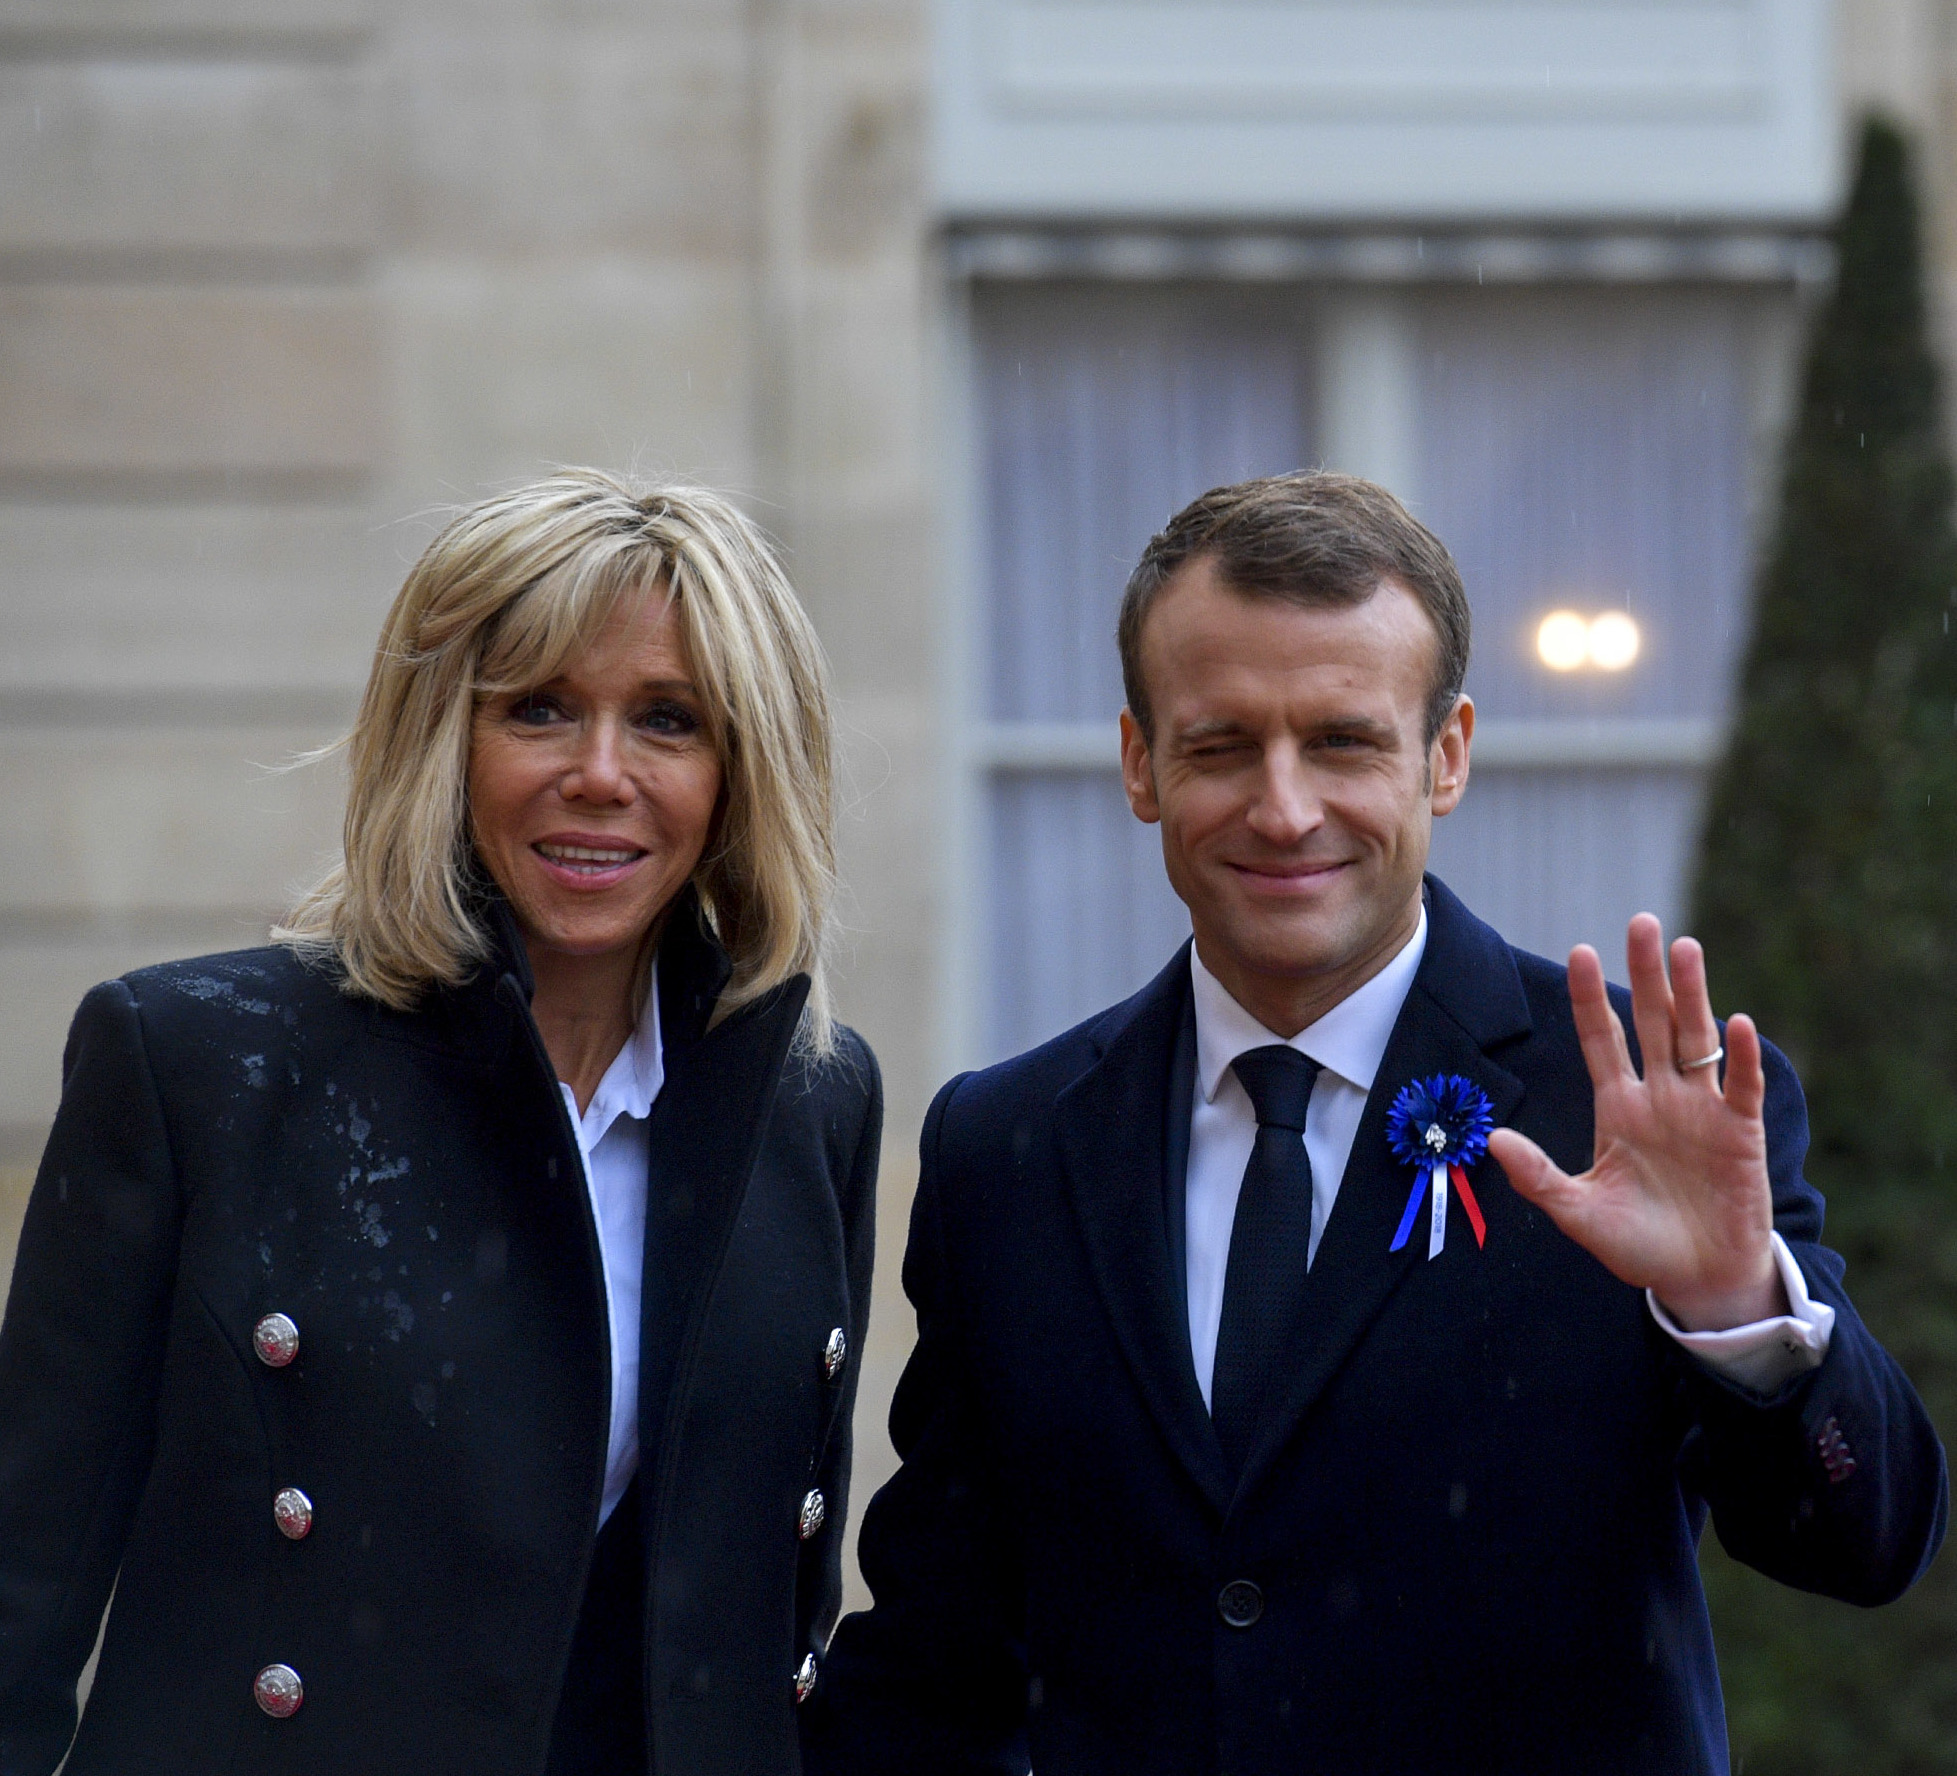 File Brigitte Macron And Emmanuel Macron November 2018 1541931666 Cropped Jpg Wikimedia Commons